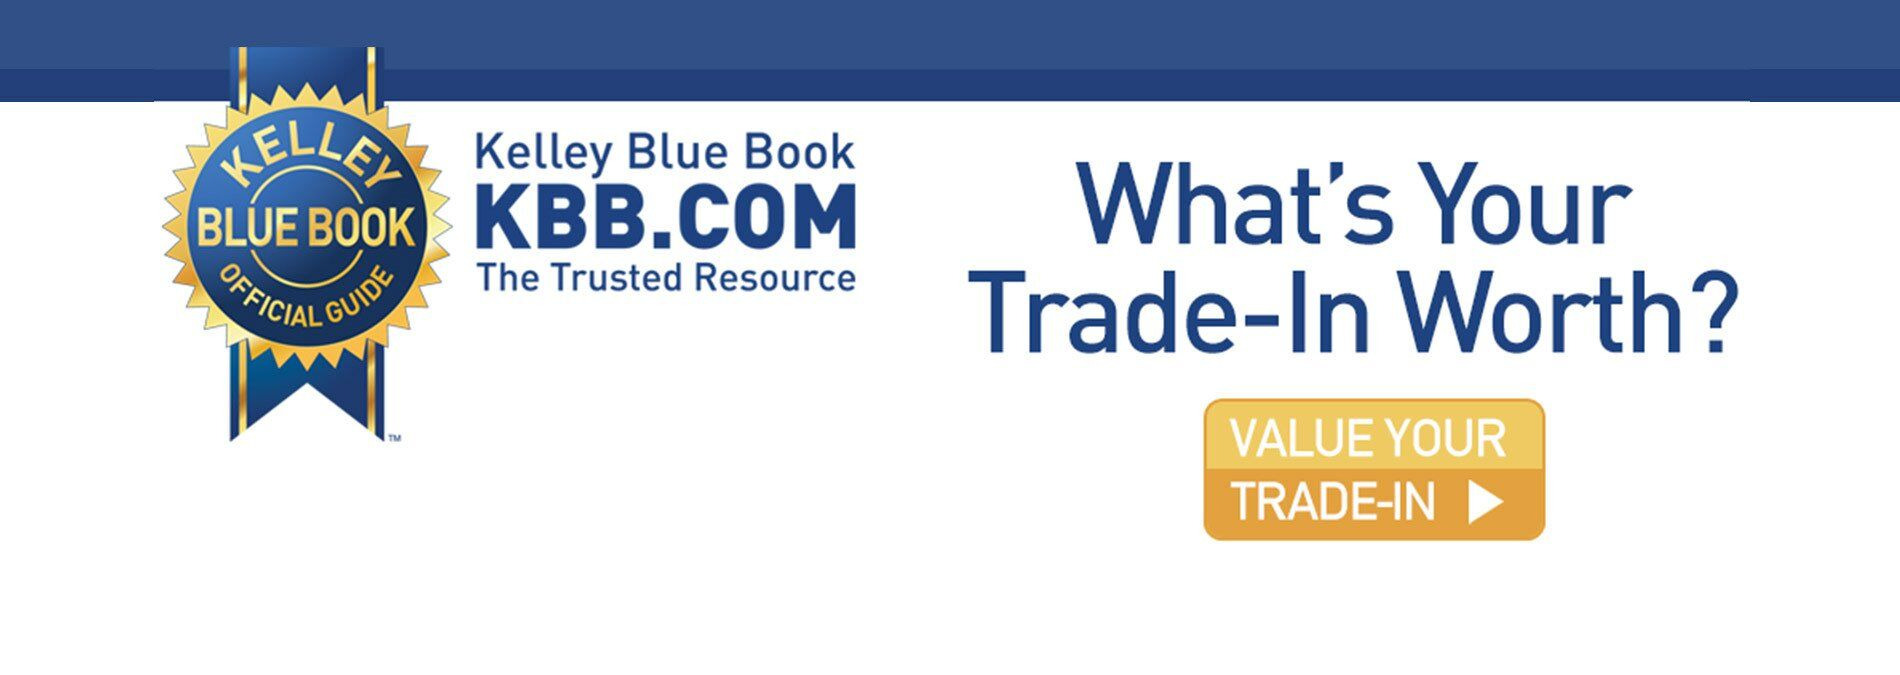 Calculate Your Trade!